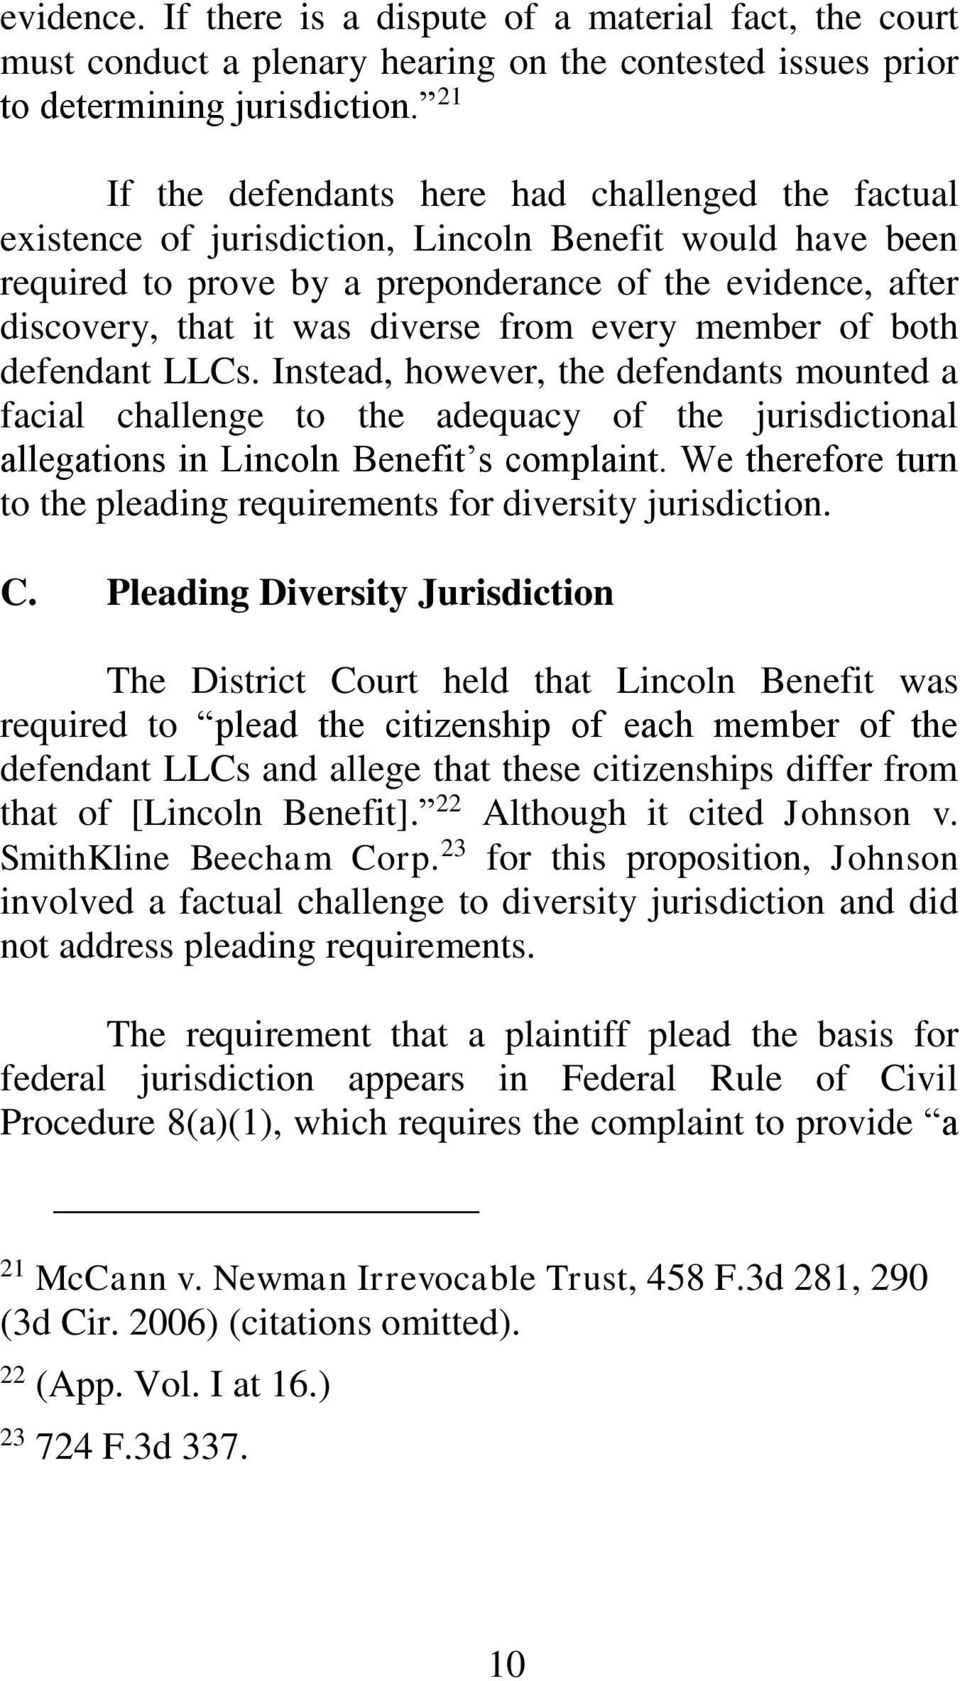 diverse from every member of both defendant LLCs. Instead, however, the defendants mounted a facial challenge to the adequacy of the jurisdictional allegations in Lincoln Benefit s complaint.